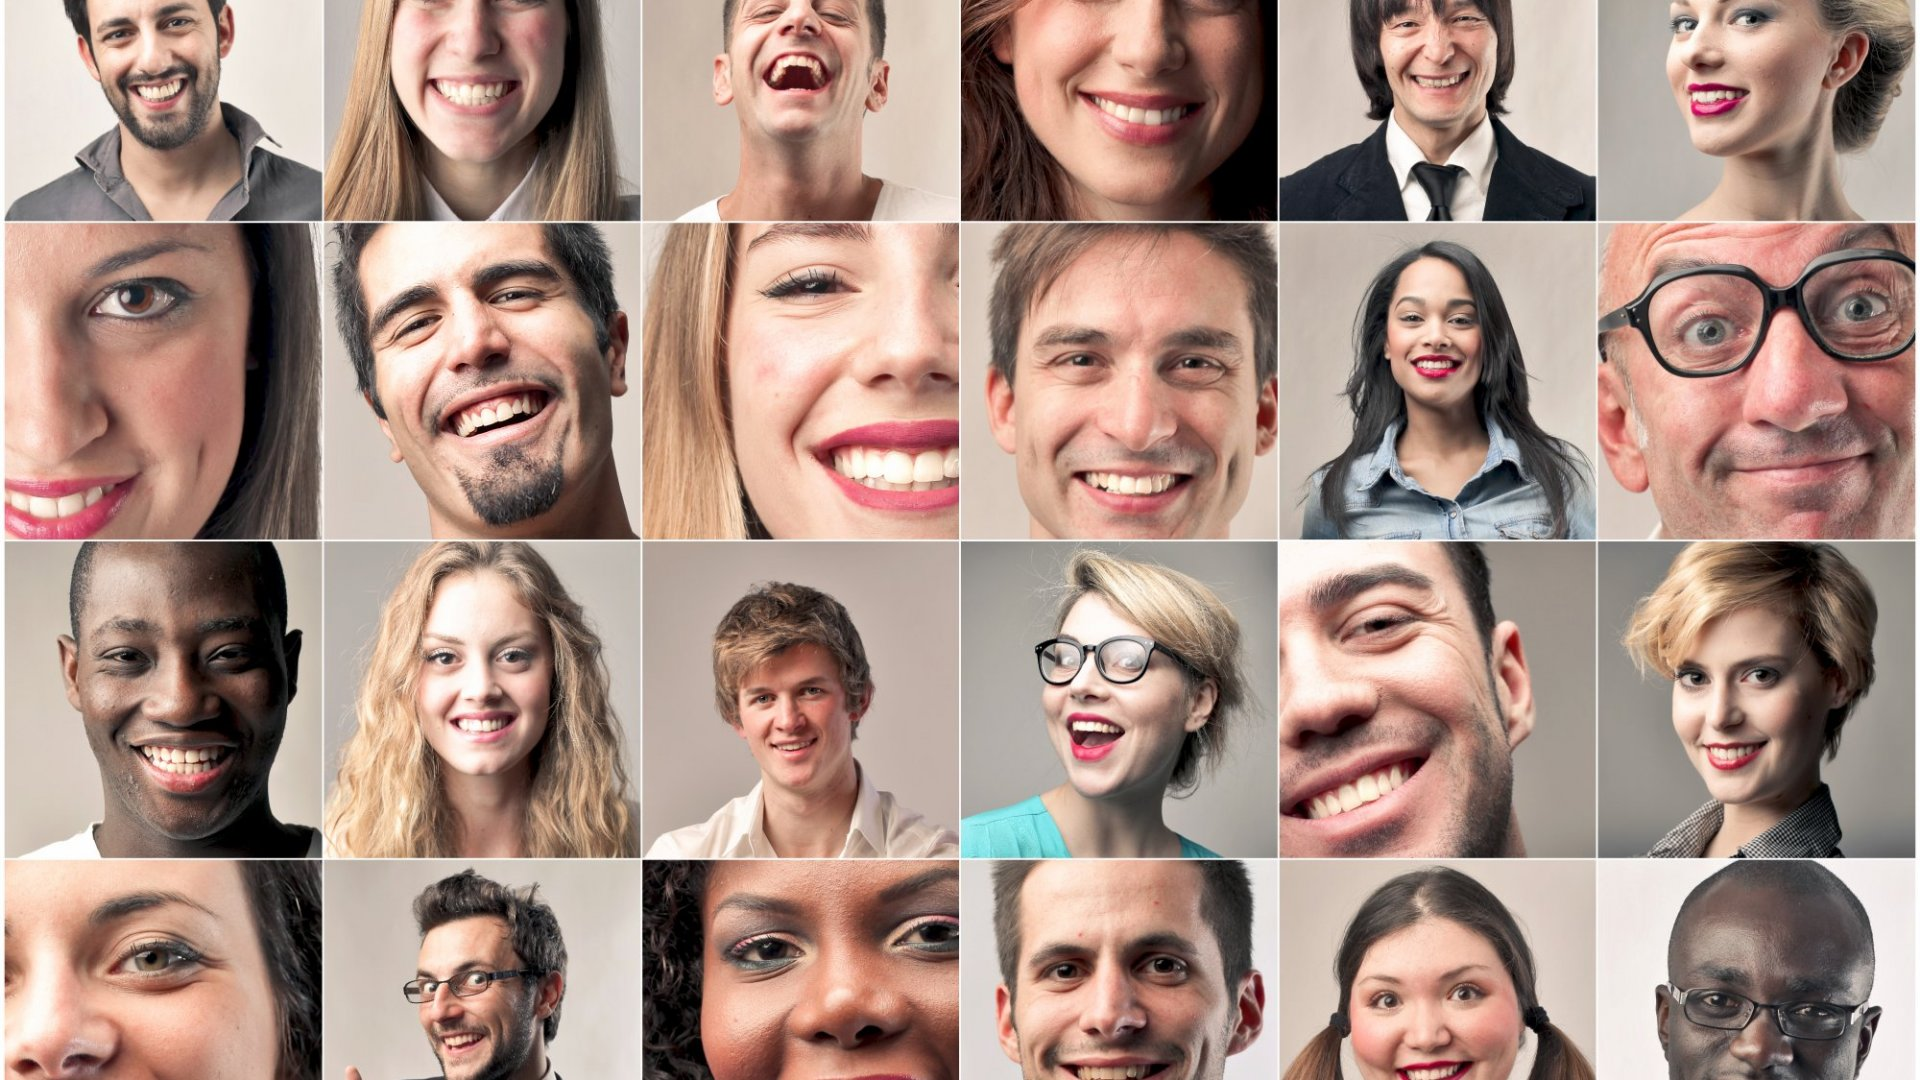 Dale Carnegie Was Right: Smiling Changes Everything